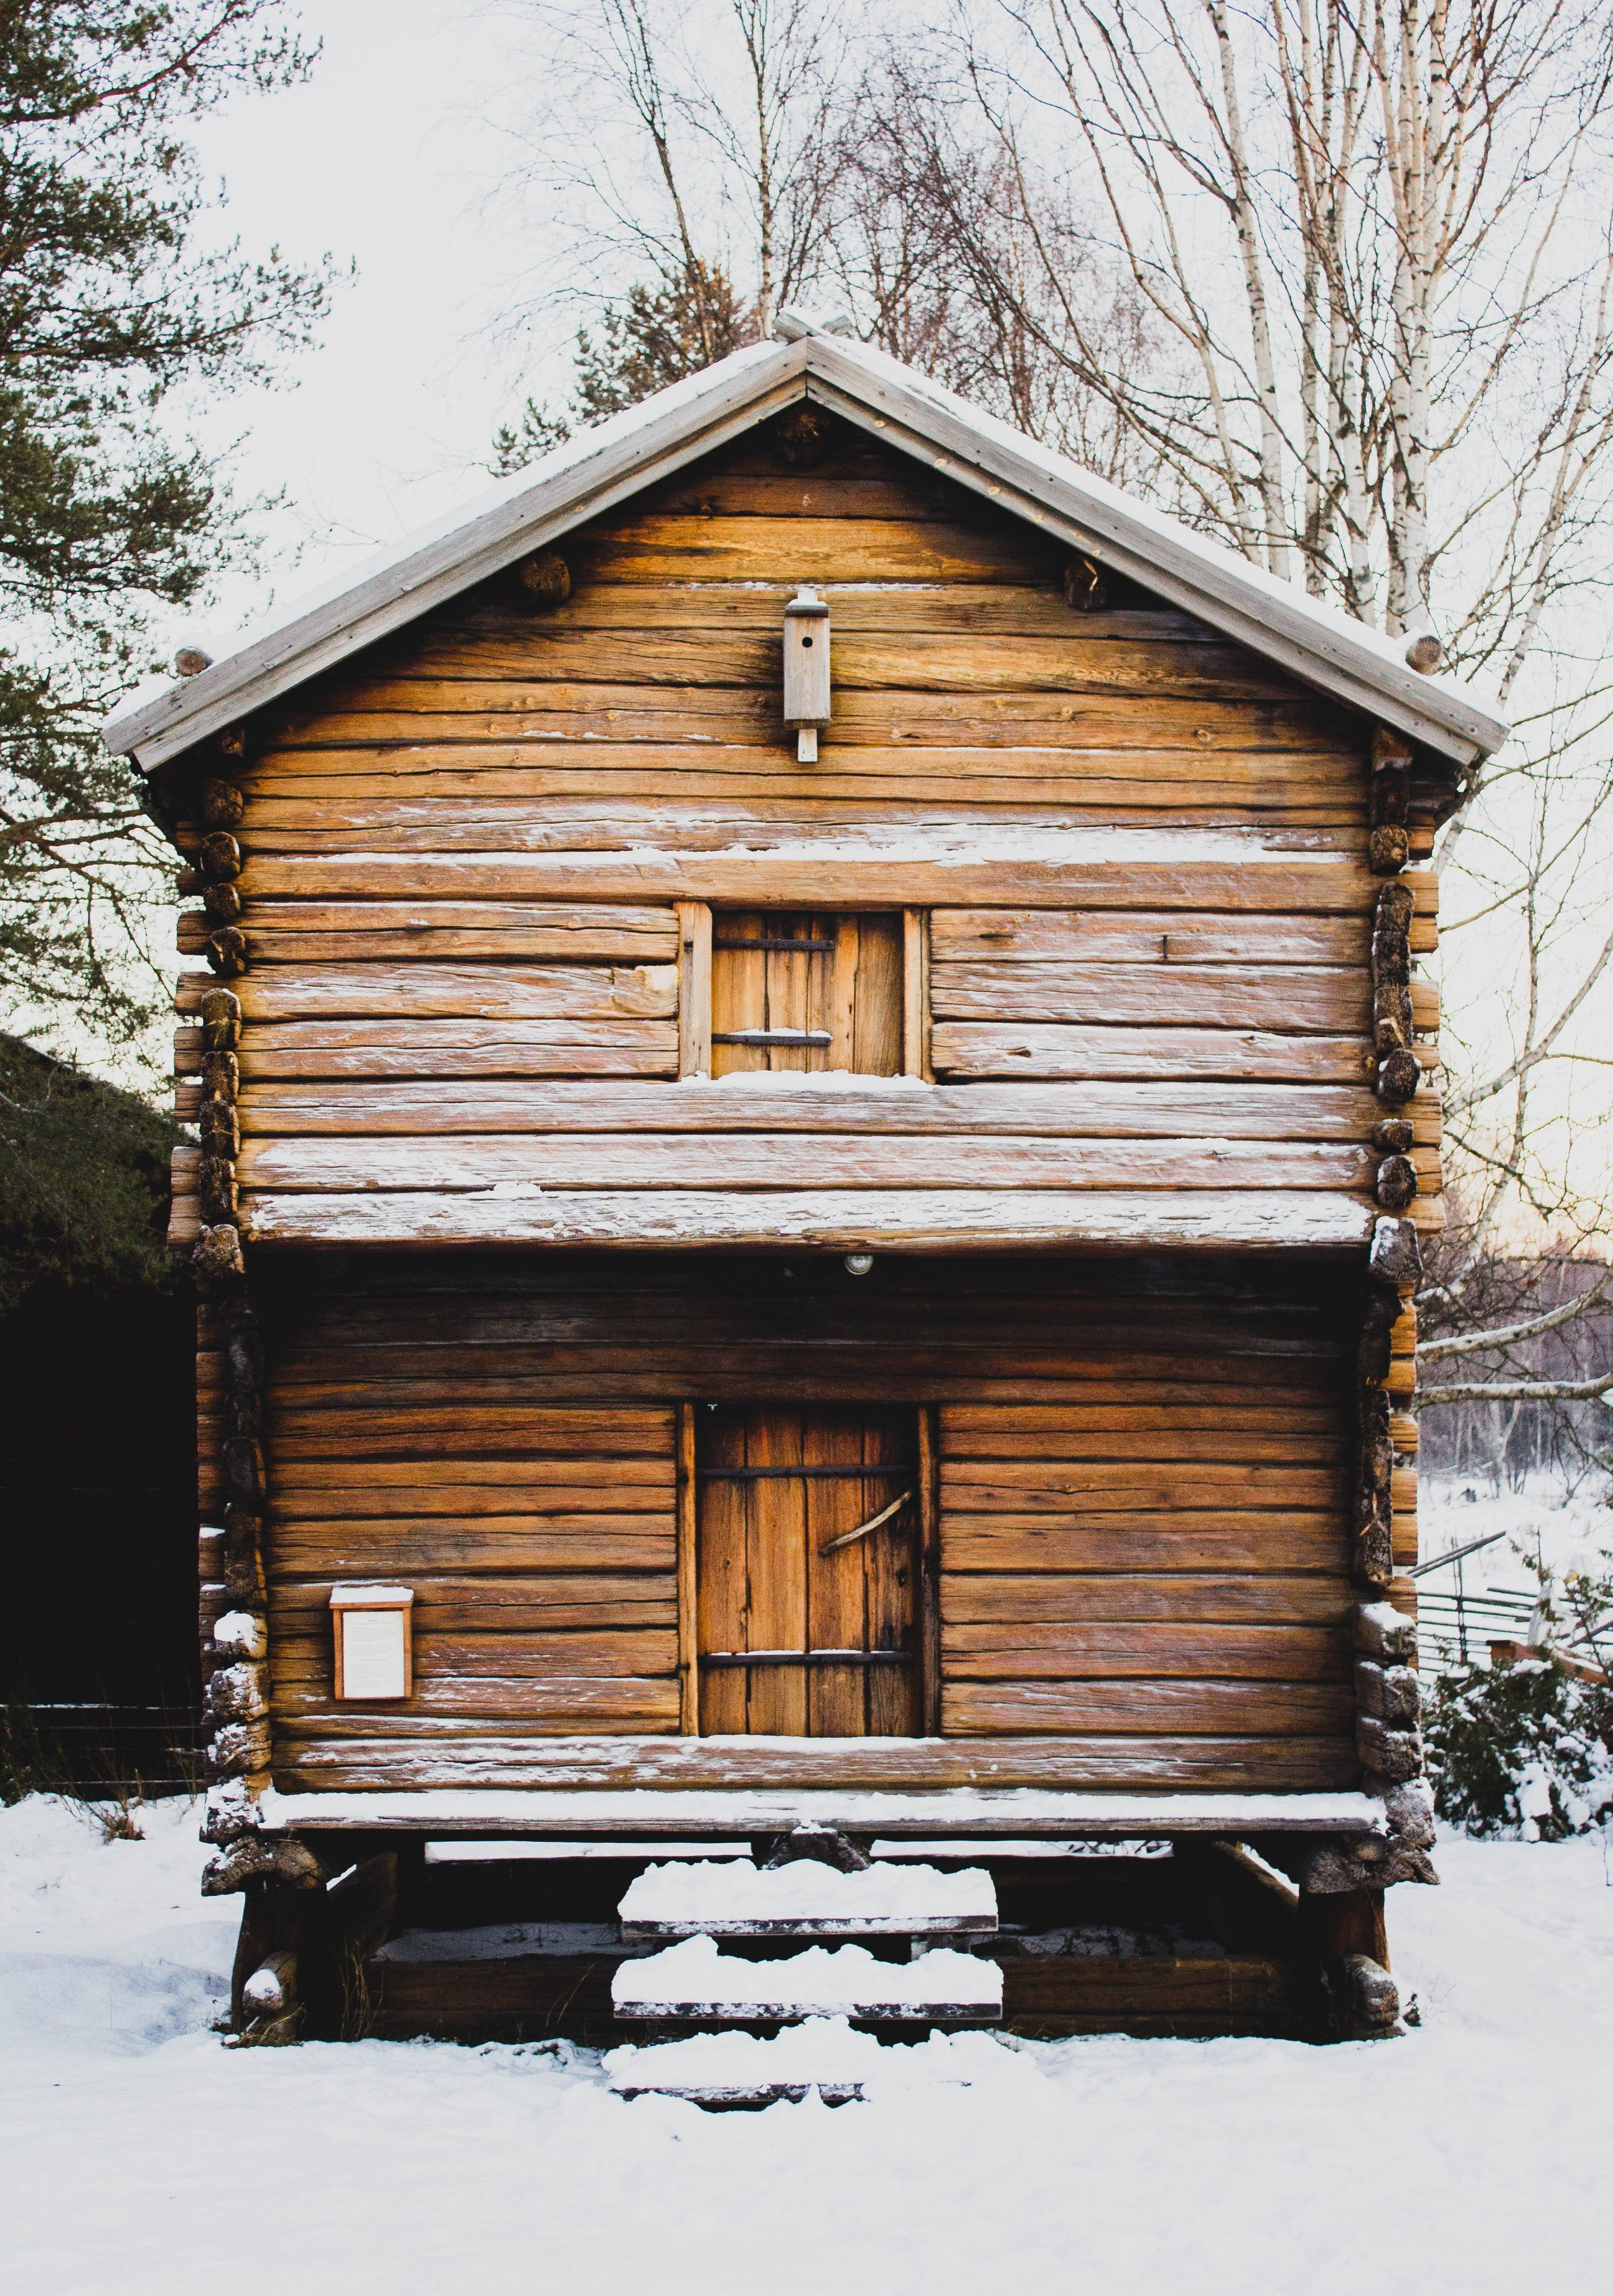 A small twostorey log cabin with steps leading onto the